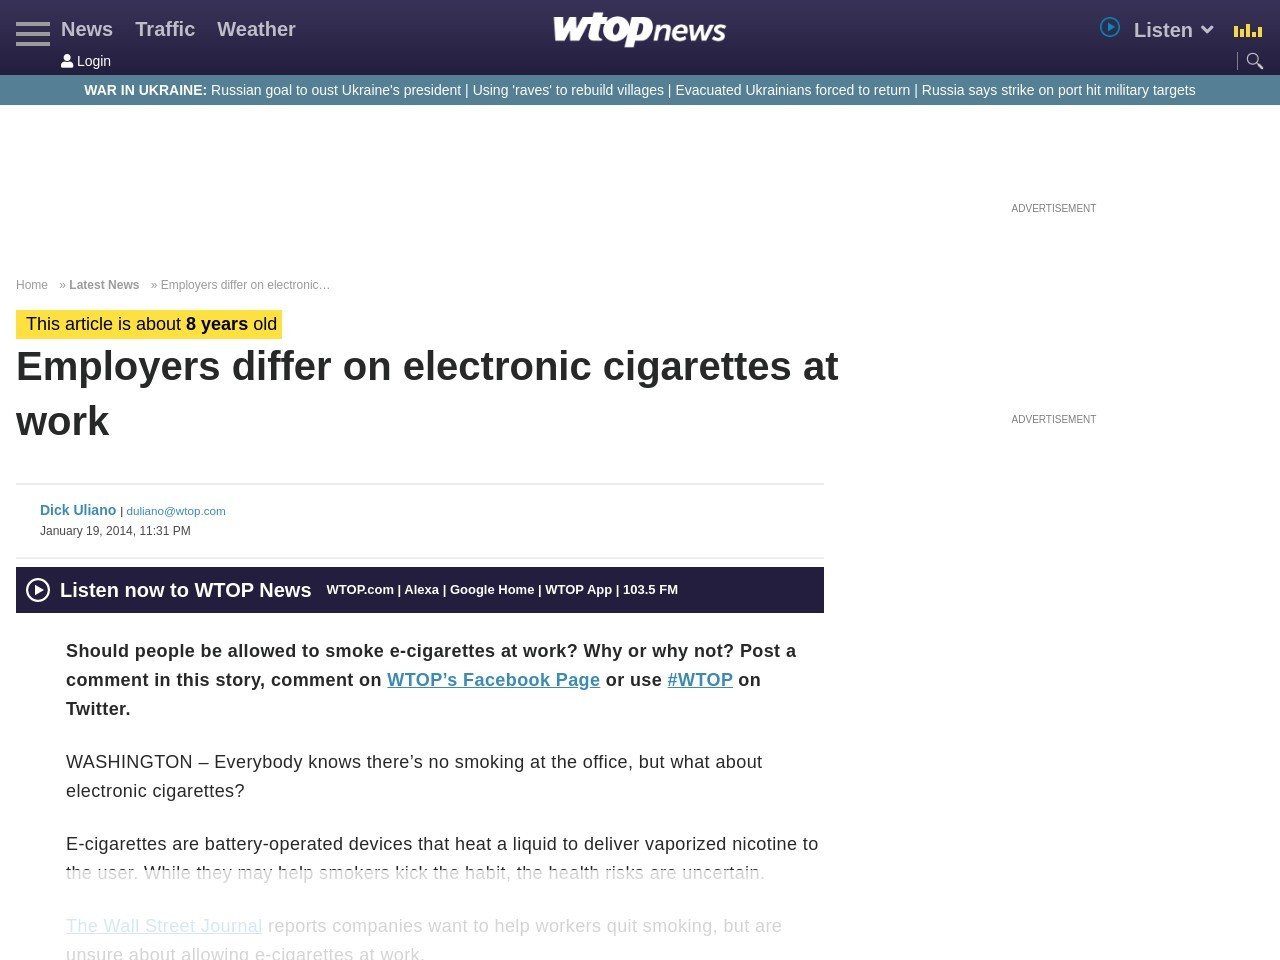 Employers differ on electronic cigarettes